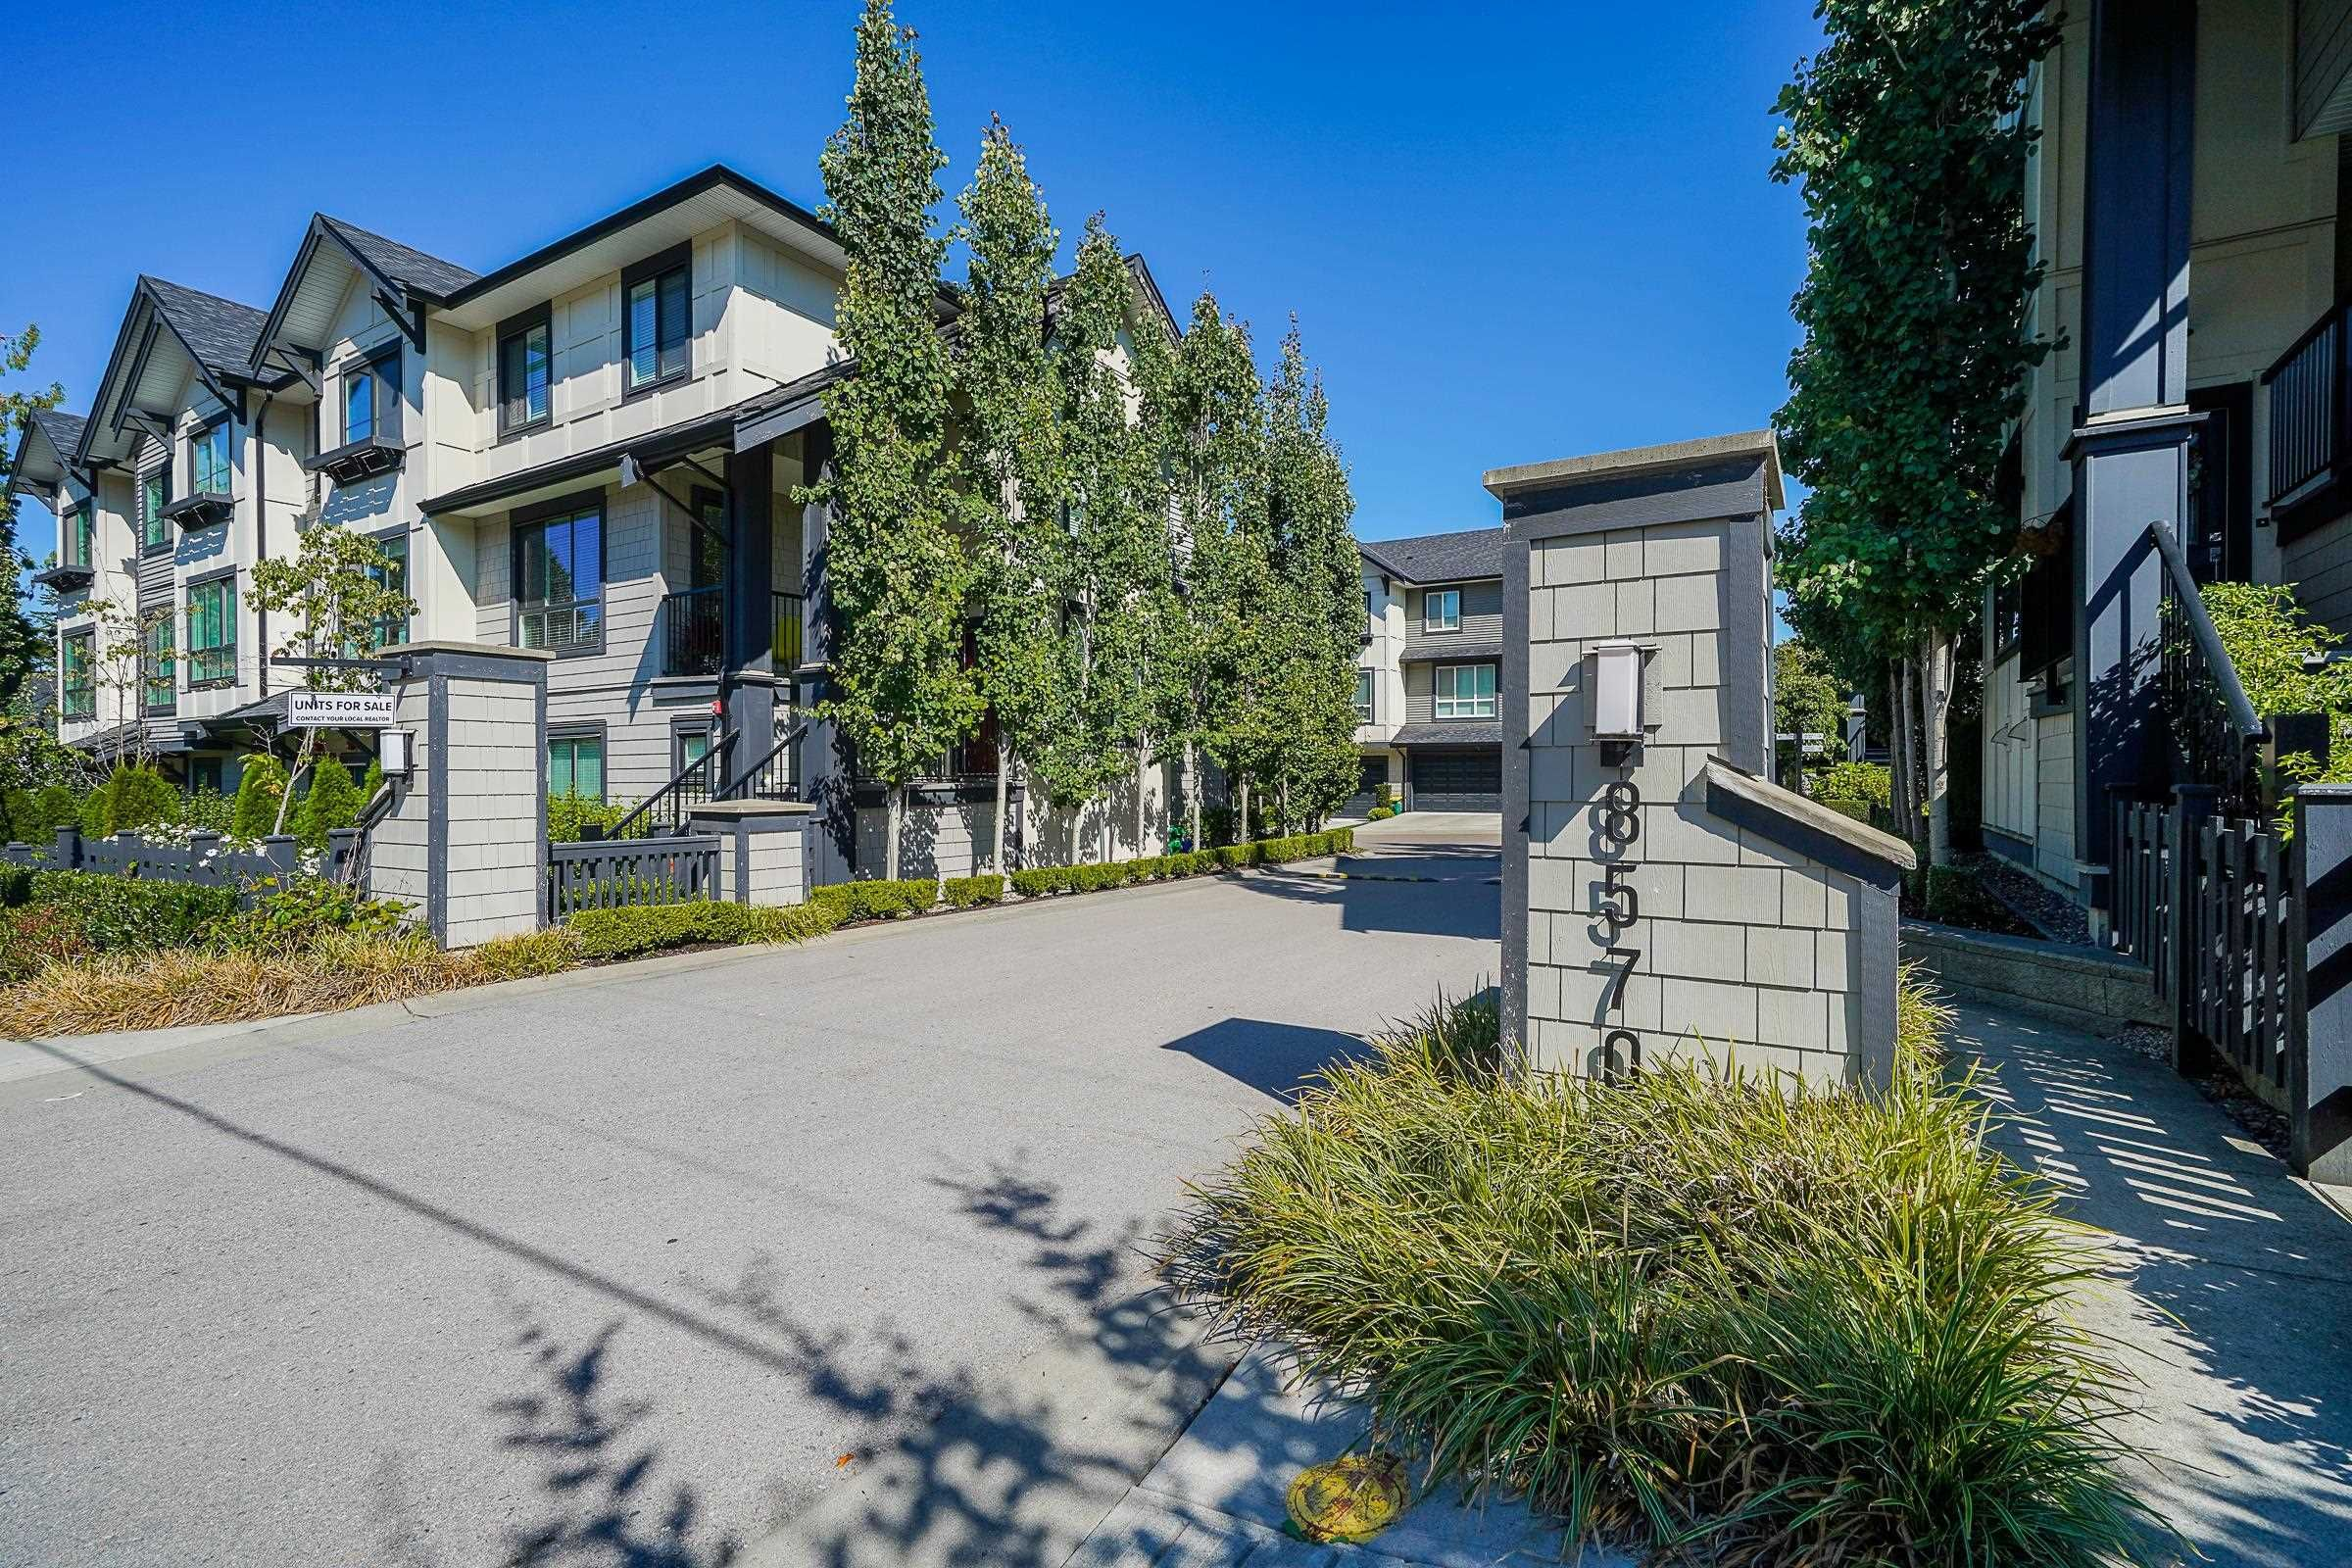 """Main Photo: 9 8570 204 Street in Langley: Willoughby Heights Townhouse for sale in """"WOODLAND PARK"""" : MLS®# R2614835"""